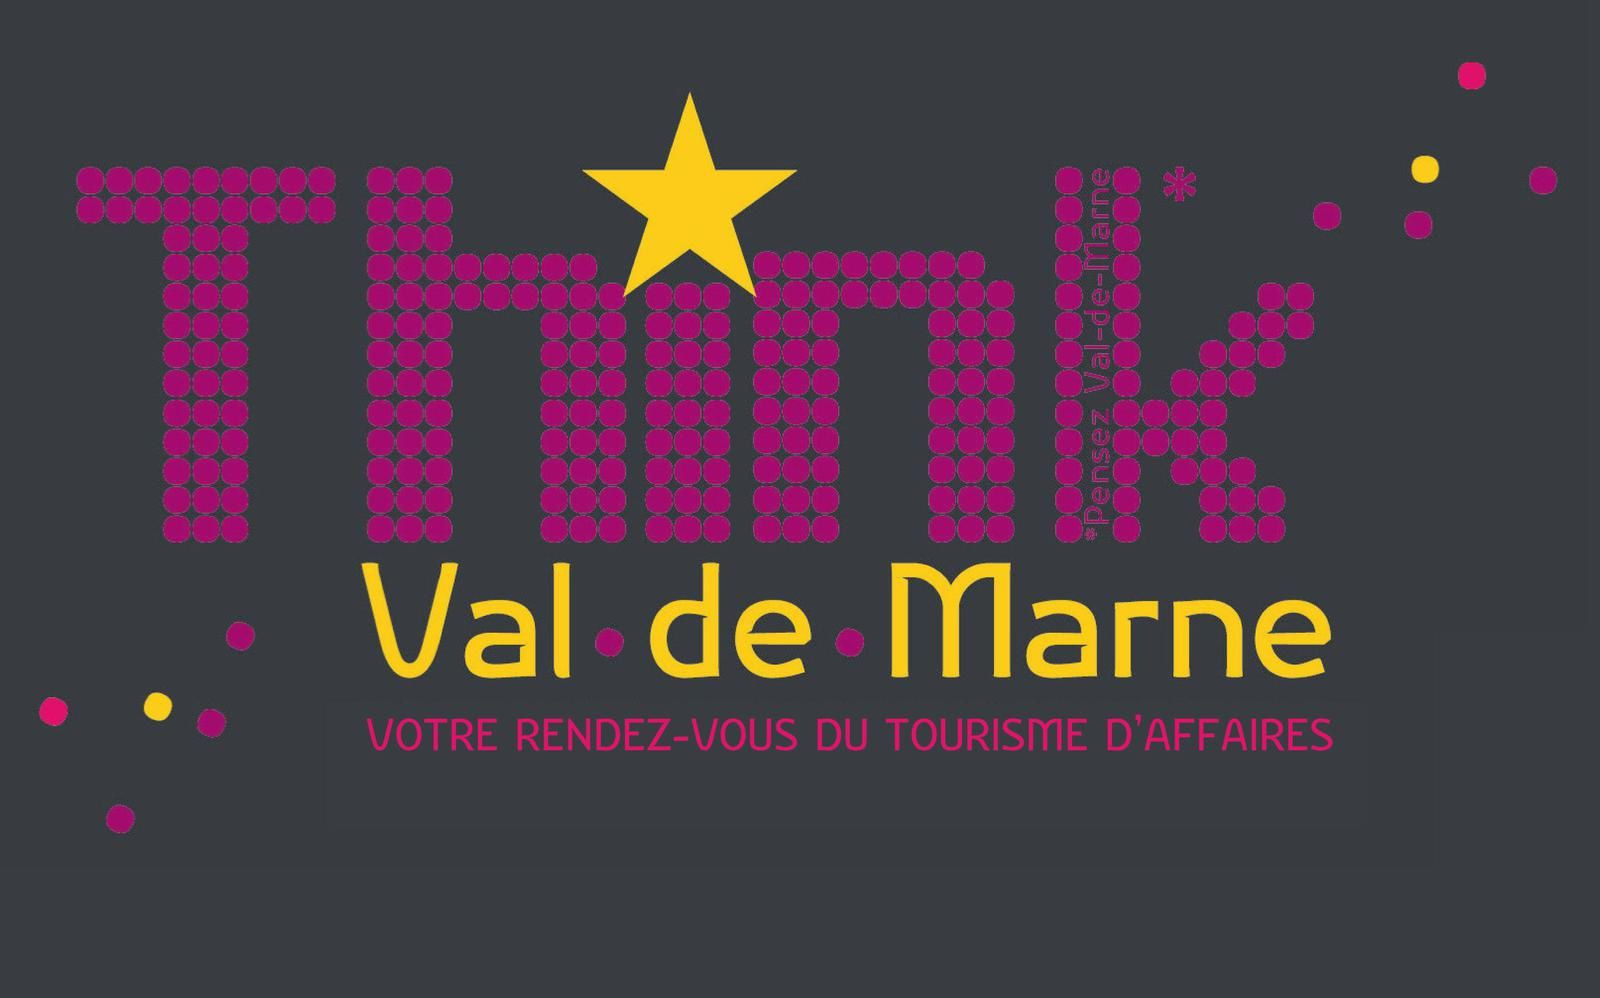 Le marketing touristique du Val-de-Marne